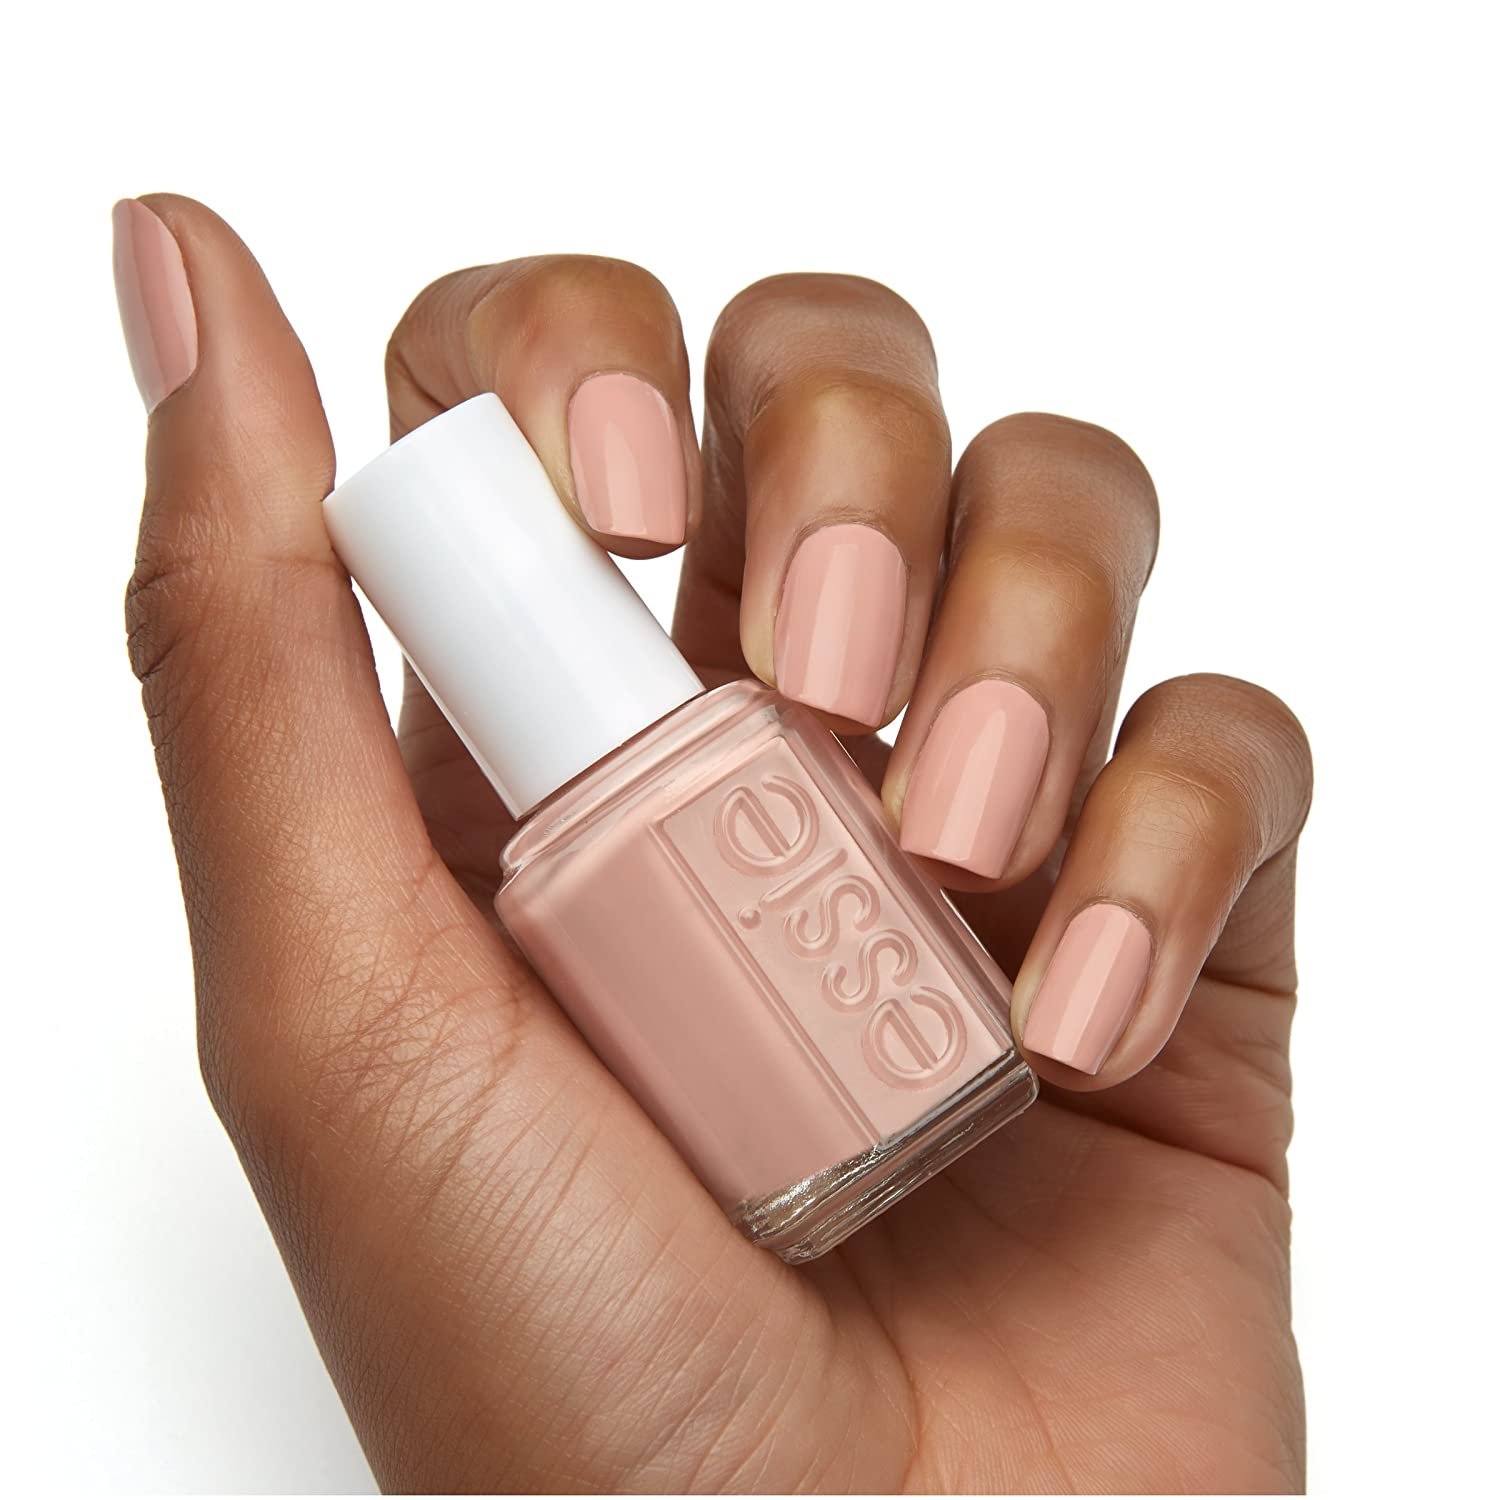 Amazon.com: essie the wild nudes 2017 nail polish collection, bare ...